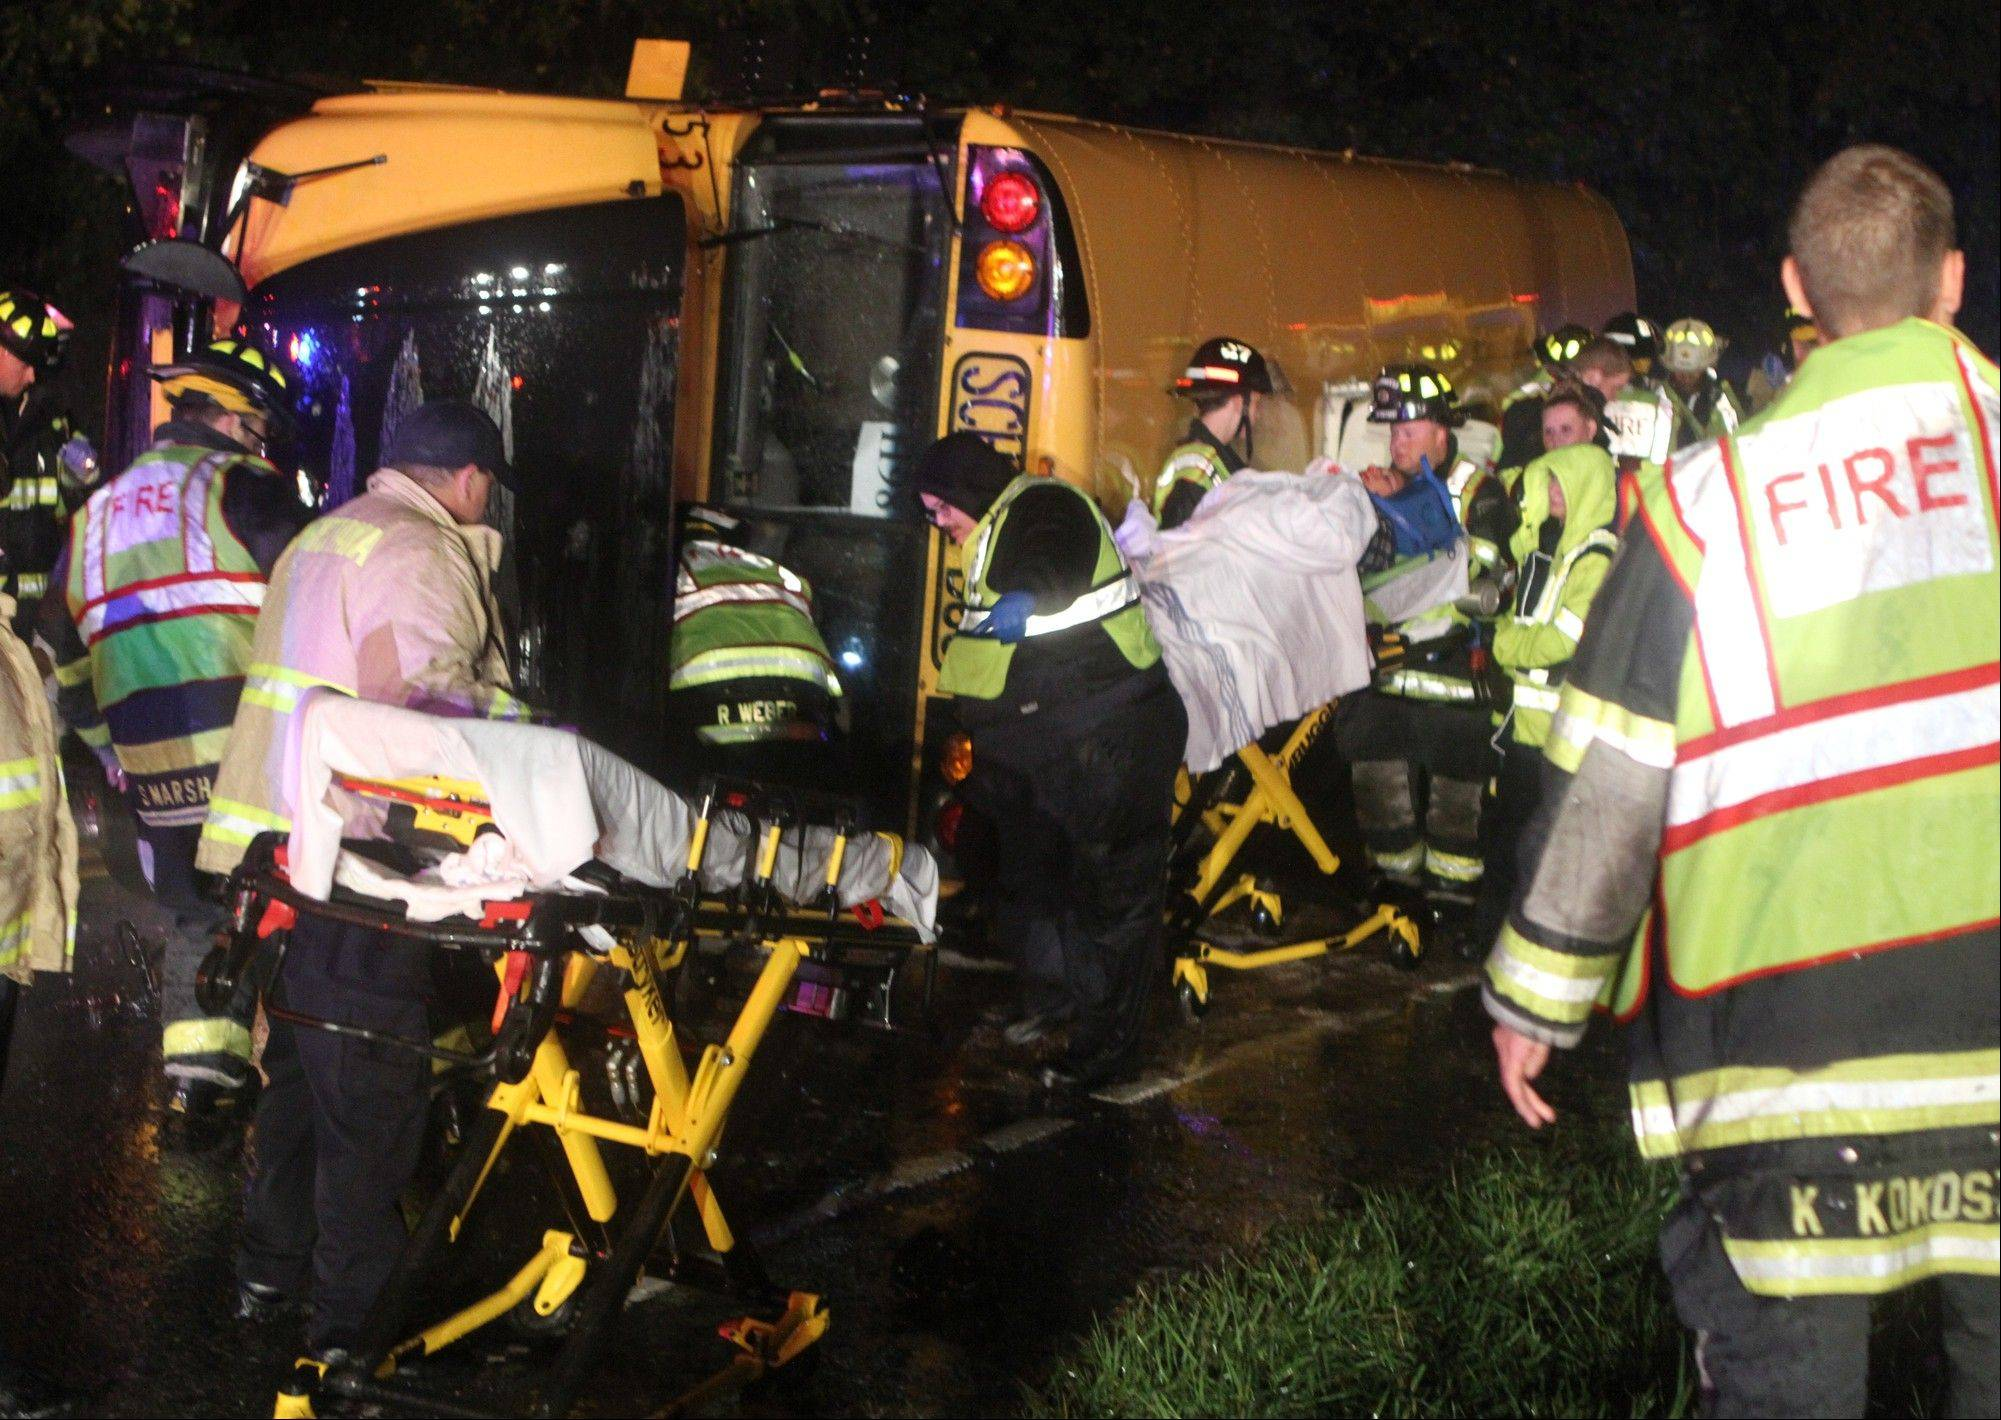 A victim is wheeled to an ambulance after a bus overturned after colliding with a carcarrier truck. Several sorority sisters from the University of Delaware were injured when a bus taking about 40 people to a party during homecoming week overturned in a crash with a tractor trailer, authorities said.